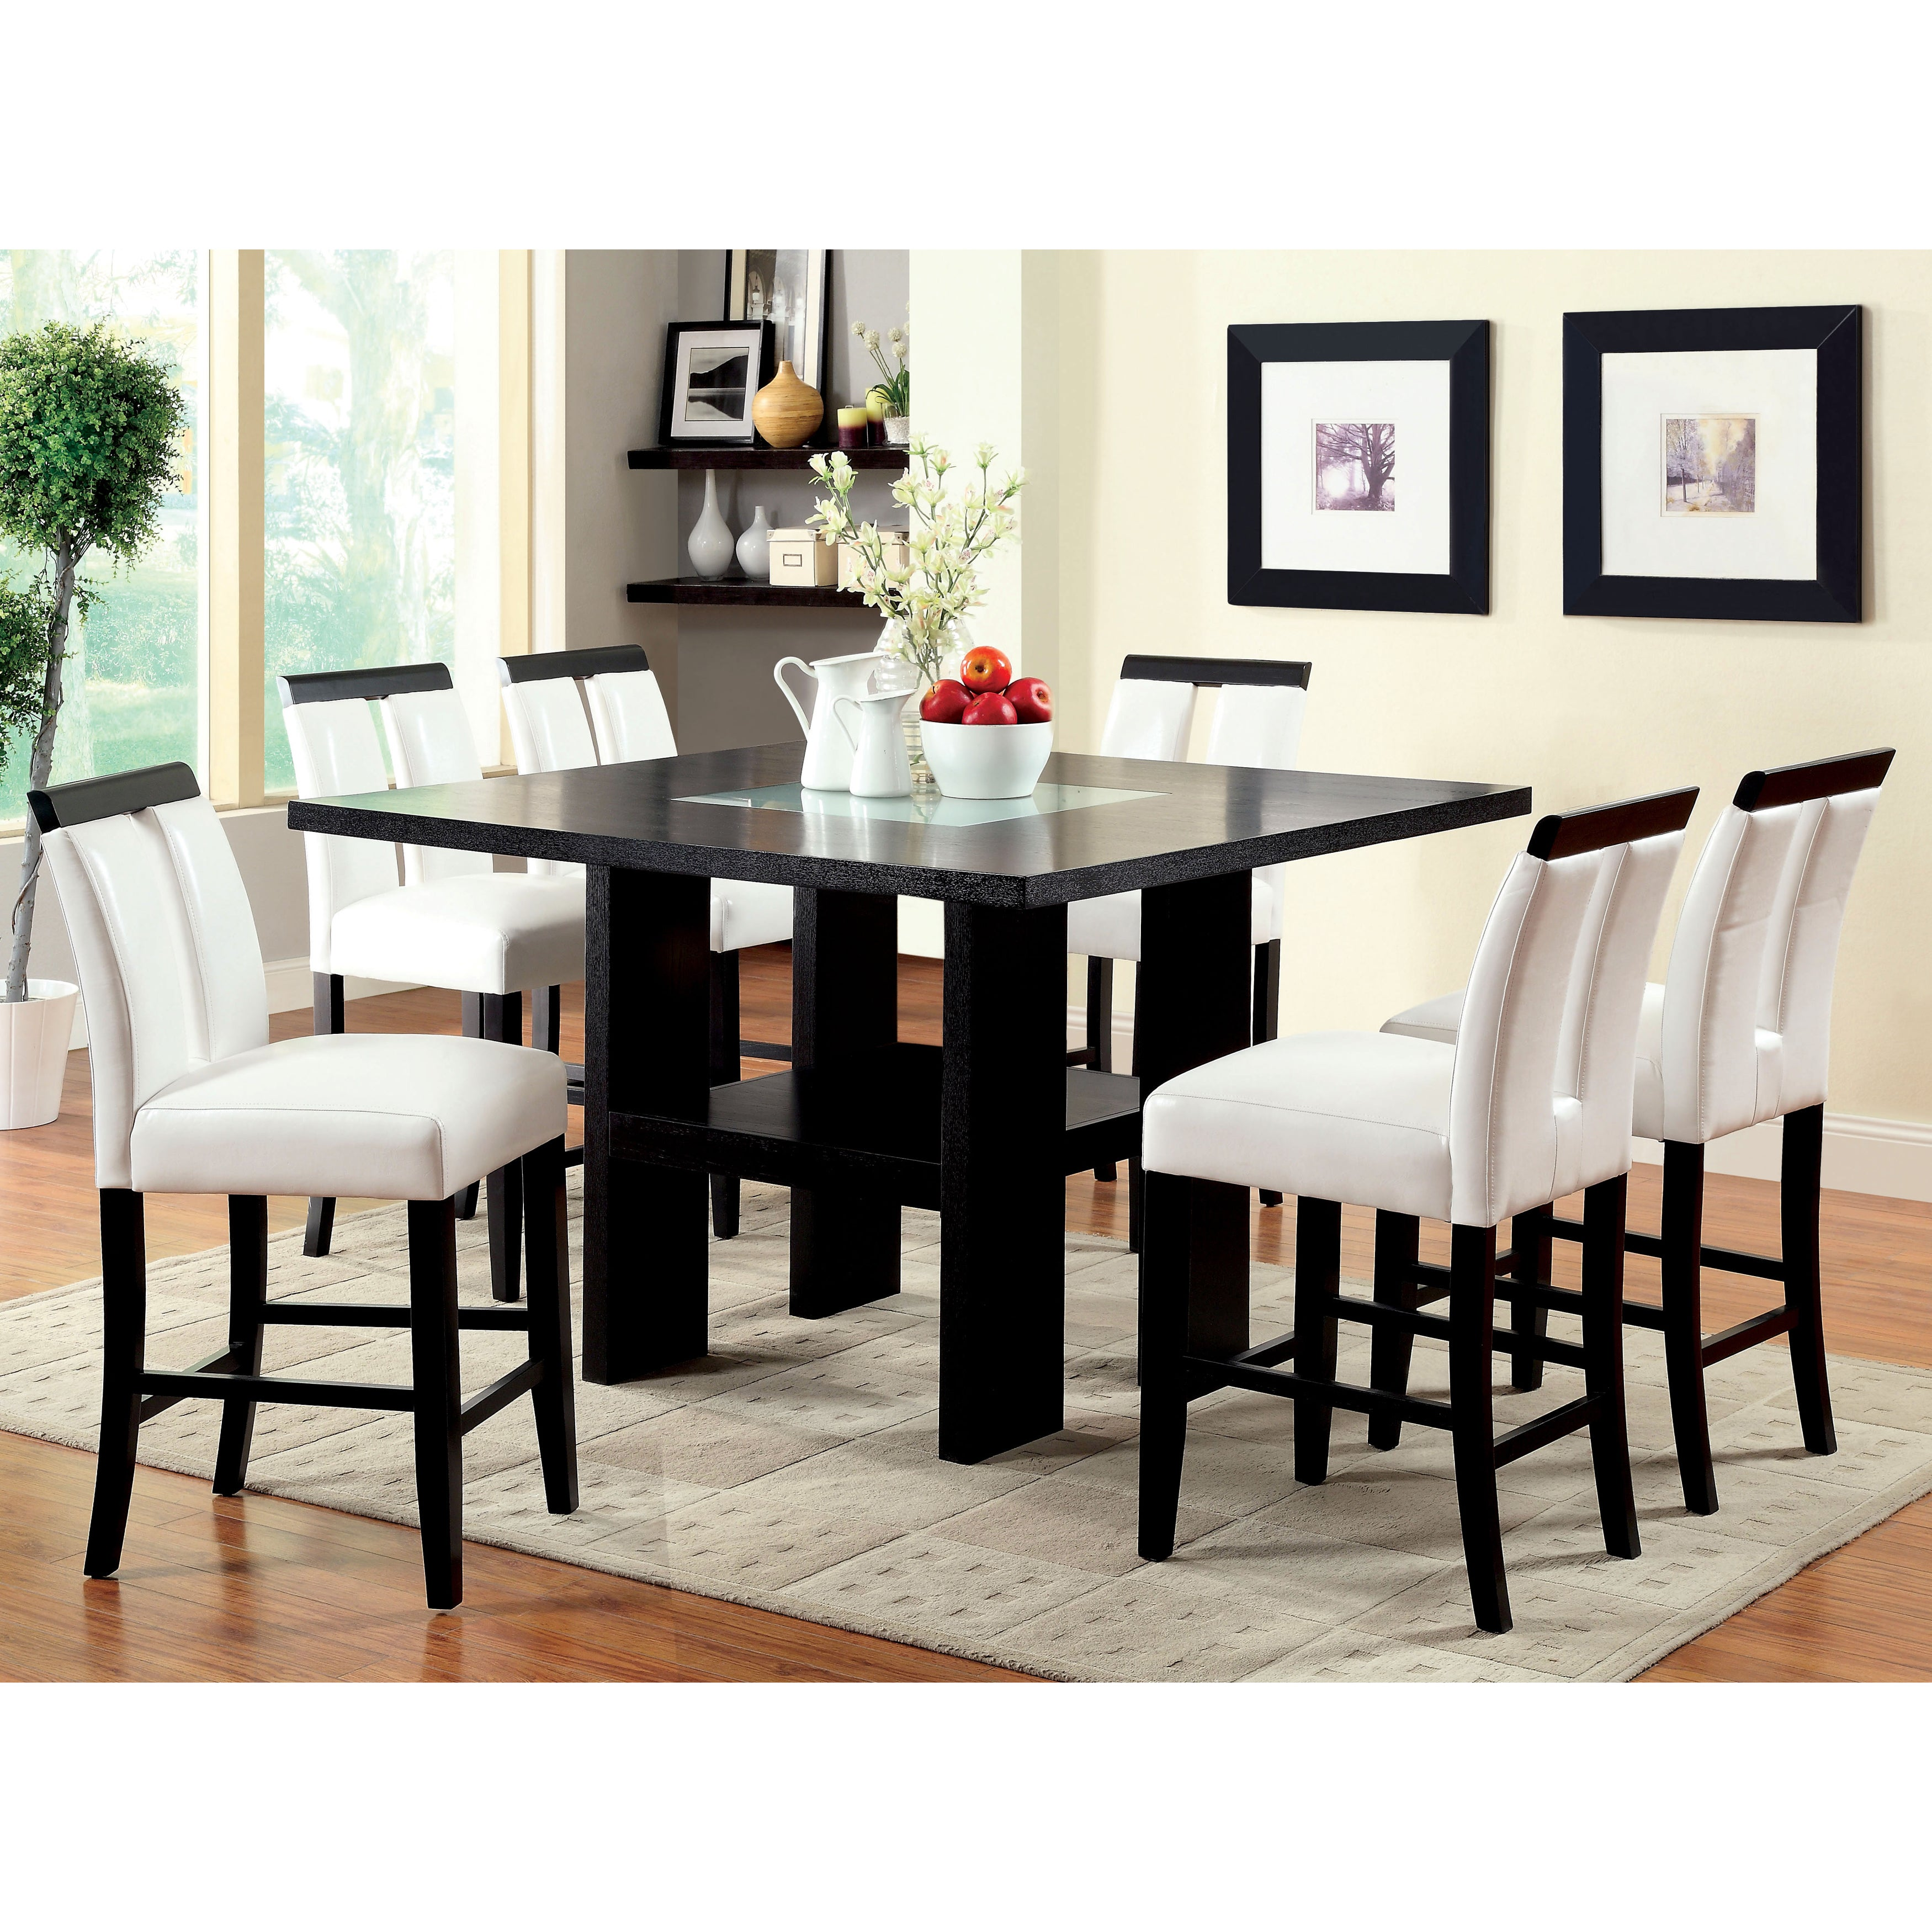 Furniture Of America Lumina 7 Piece Light Up Counter Height Dining Set Overstock 20831098